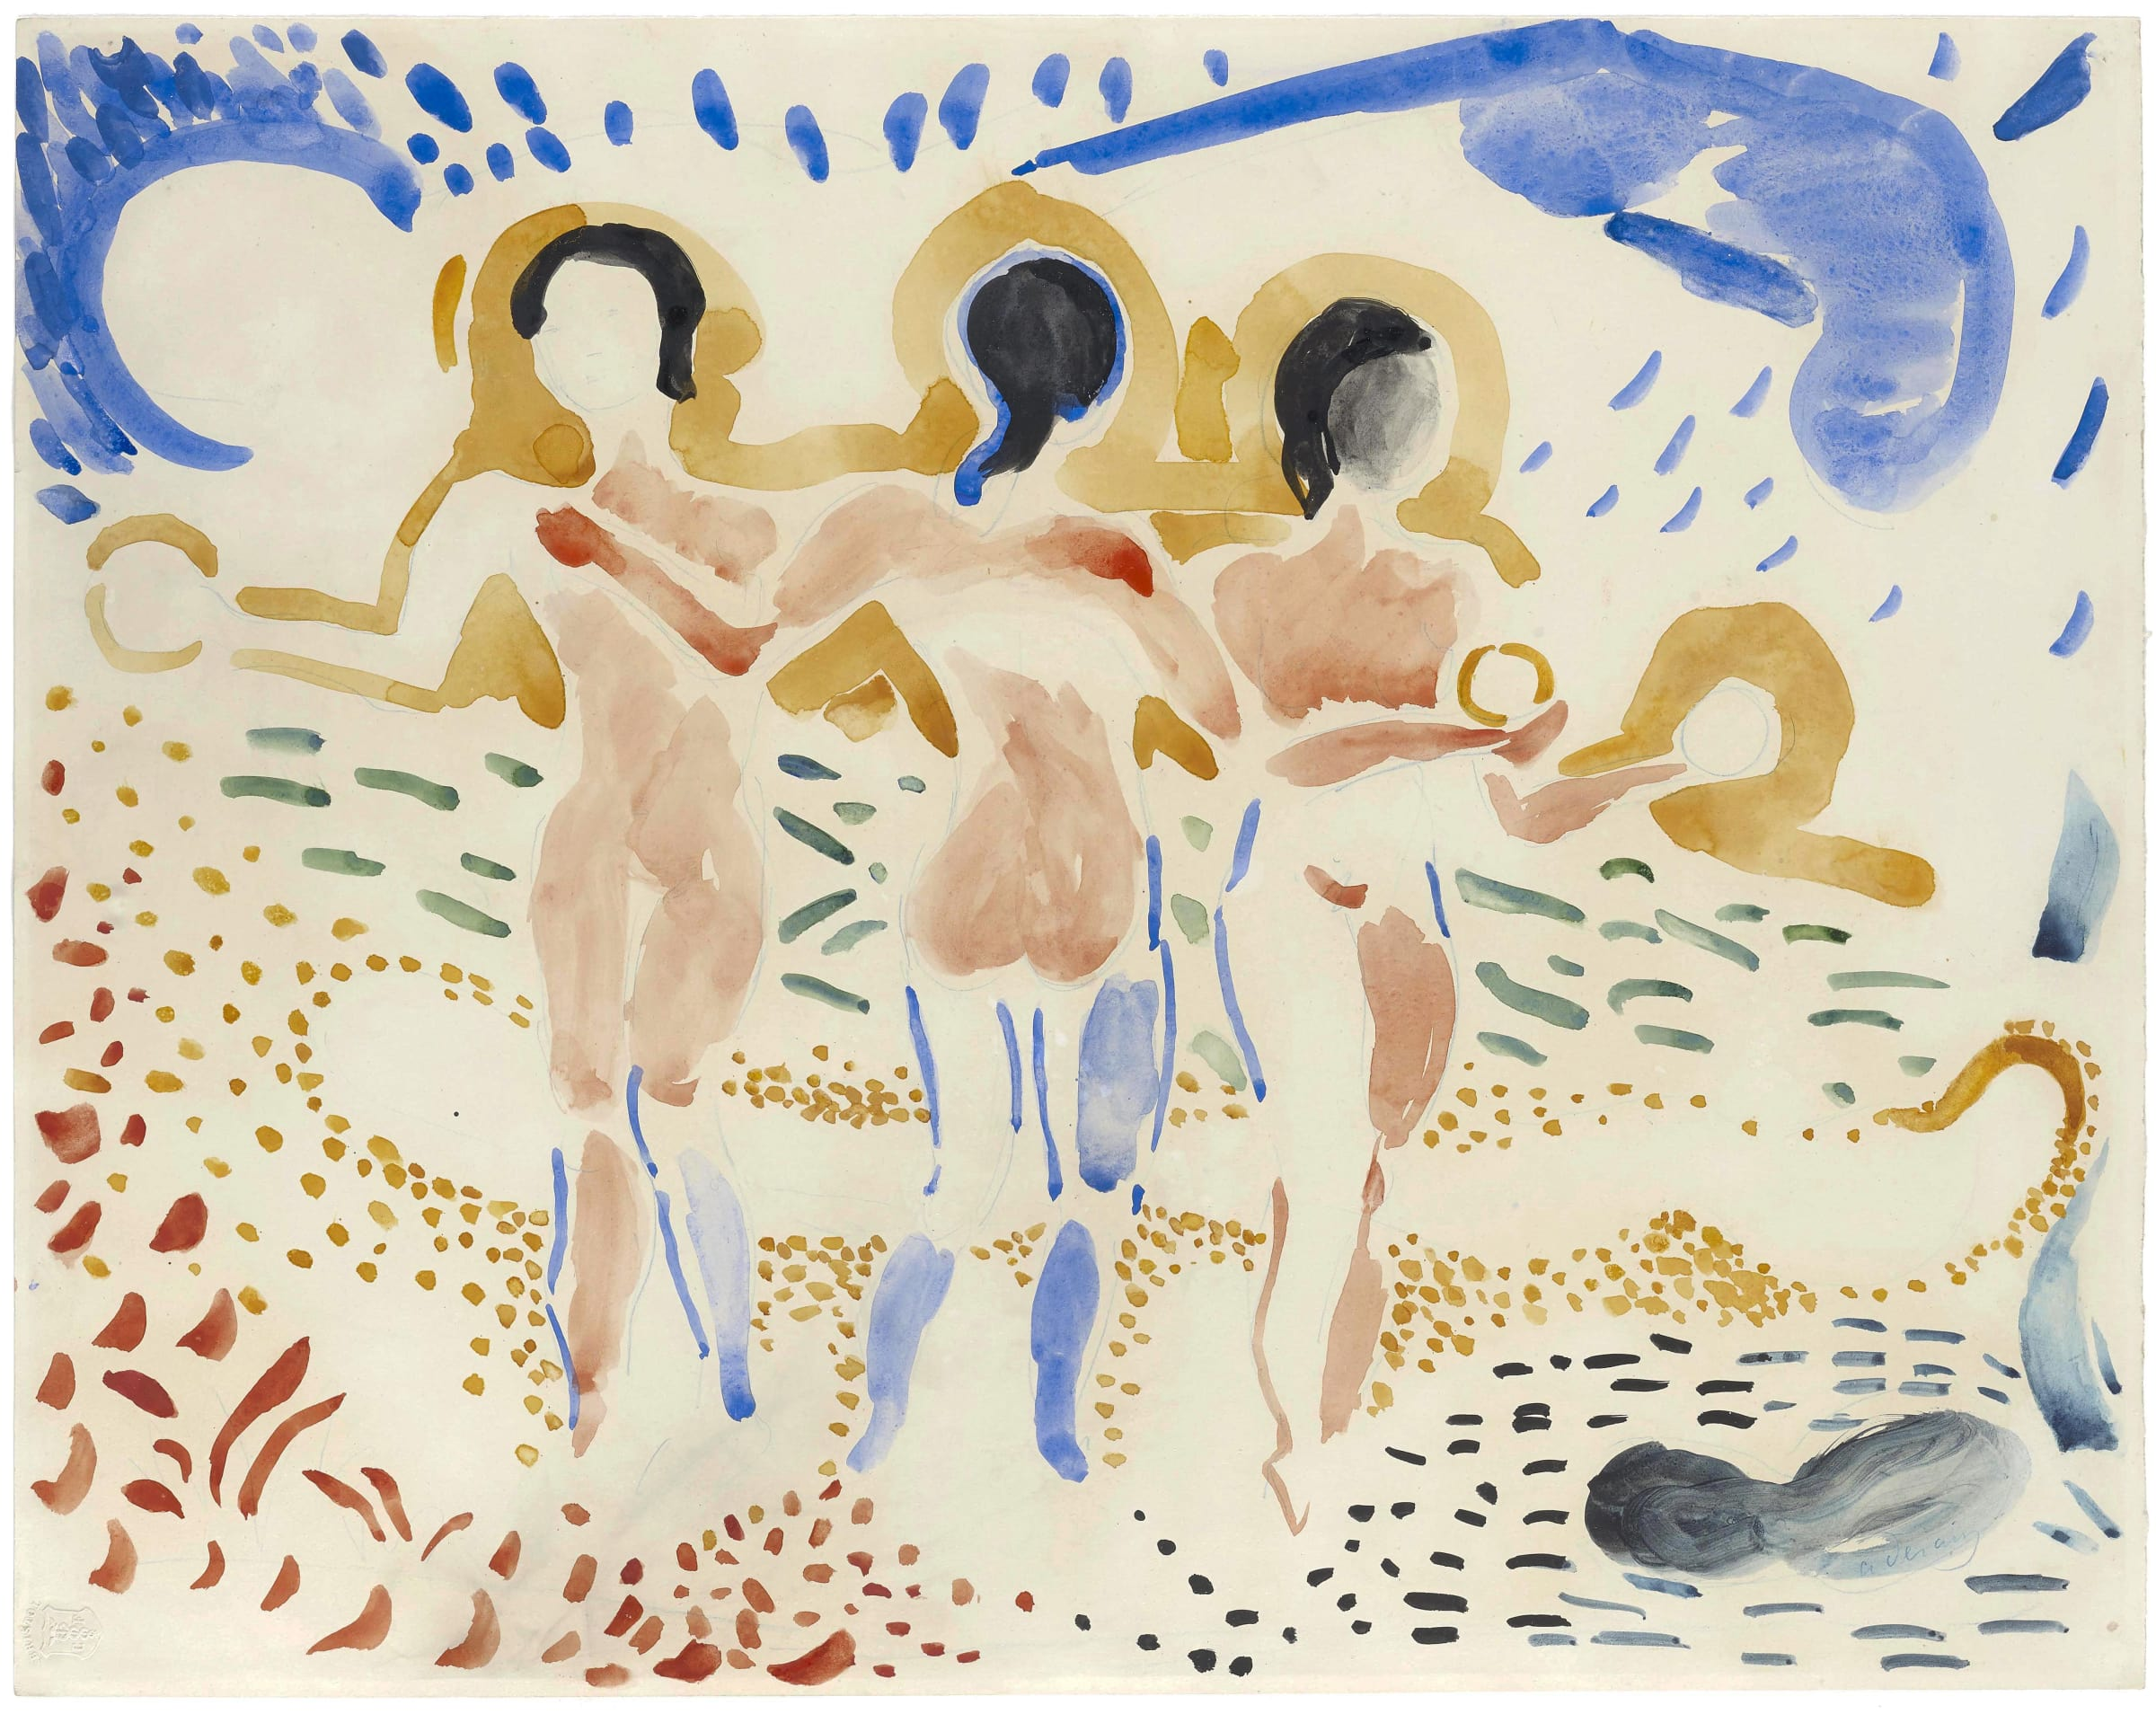 "<span class=""link fancybox-details-link""><a href=""/exhibitions/6/works/artworks_standalone9388/"">View Detail Page</a></span><div class=""signed_and_dated"">Signed lower right a.derain Watermark Bristol lower left</div>